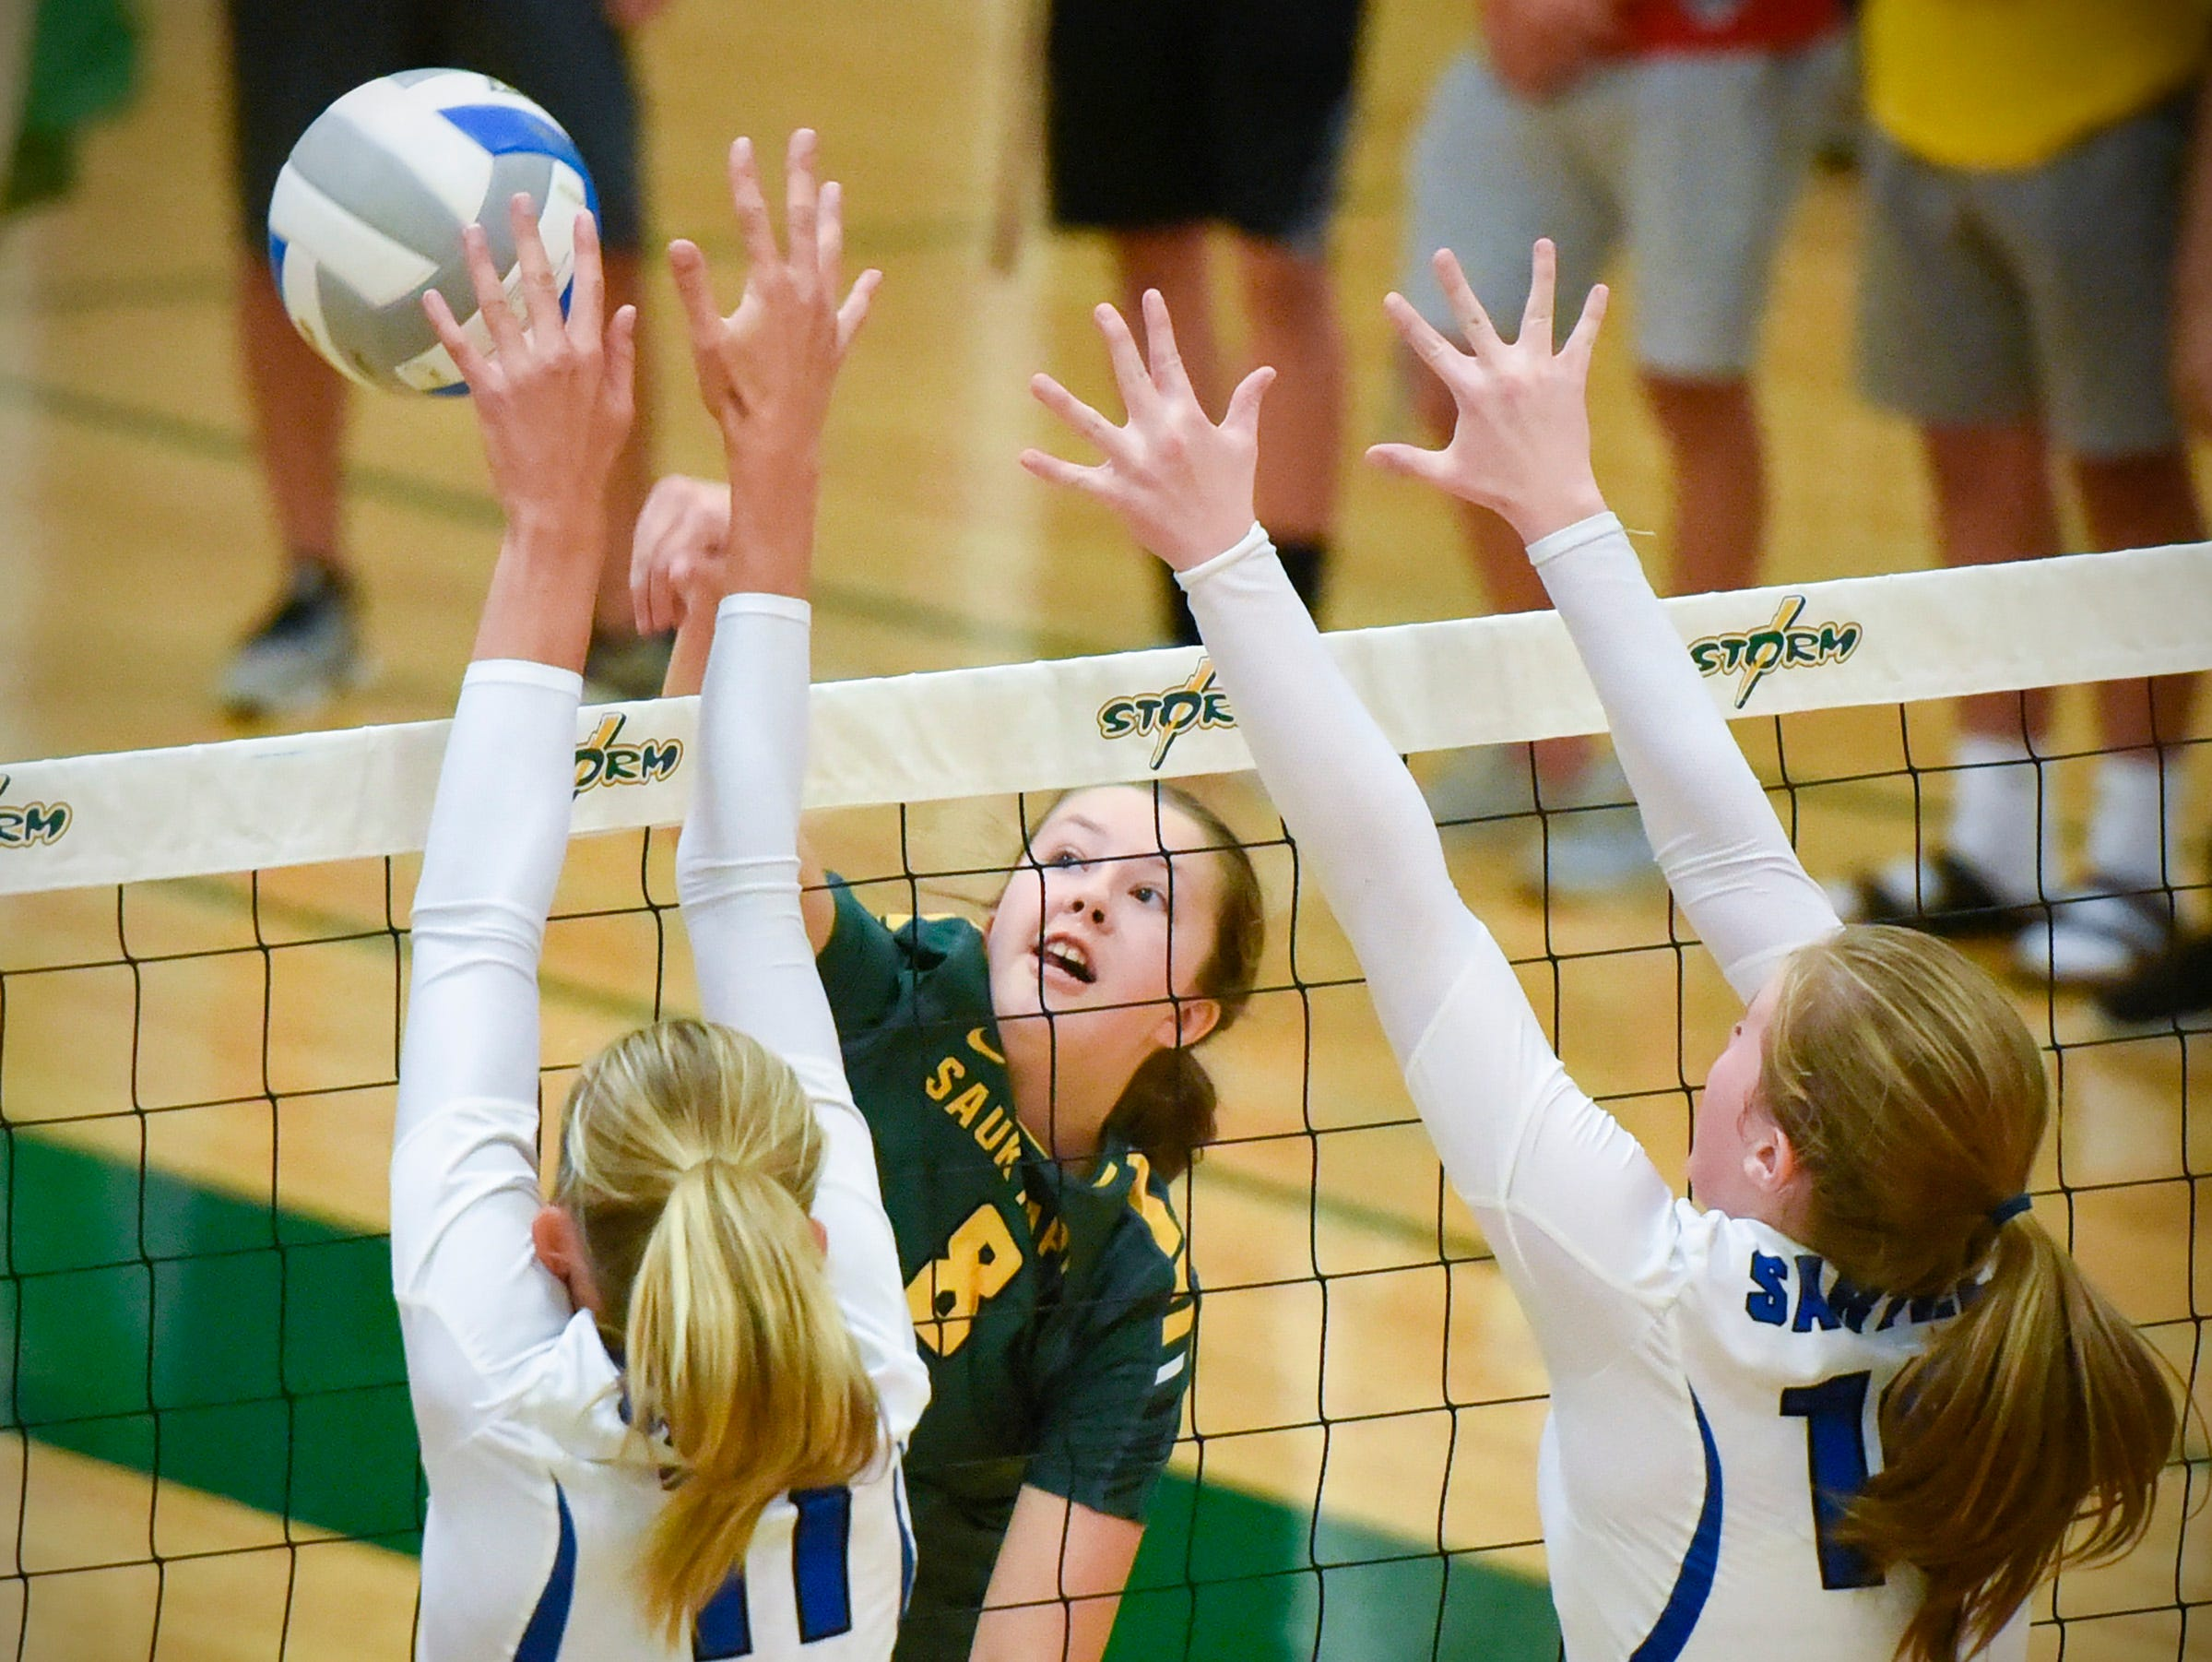 Sauk Rapids' Cora Weirens spikes the ball at the net against Sartell during the first game Thursday, Sept. 13, at Sauk Rapids.